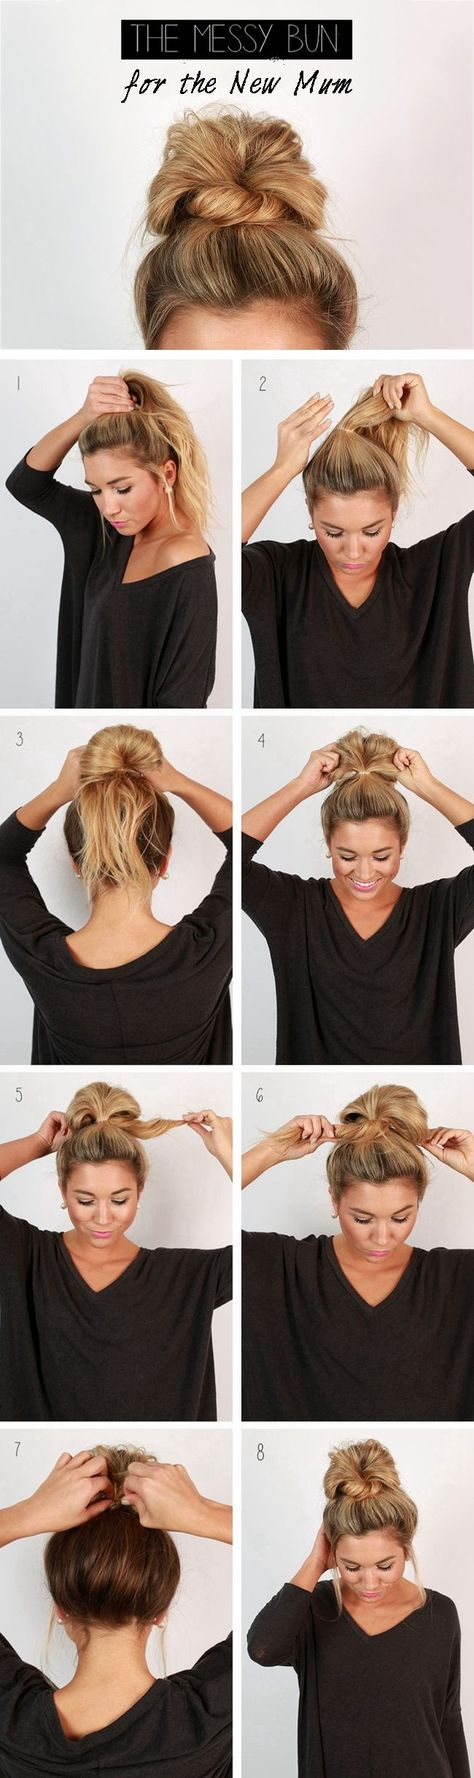 Messy Bun - Hairstyles for the New Mom : Wedding Dresses, Bridesmaid Dresses, Gowns Online Shop,